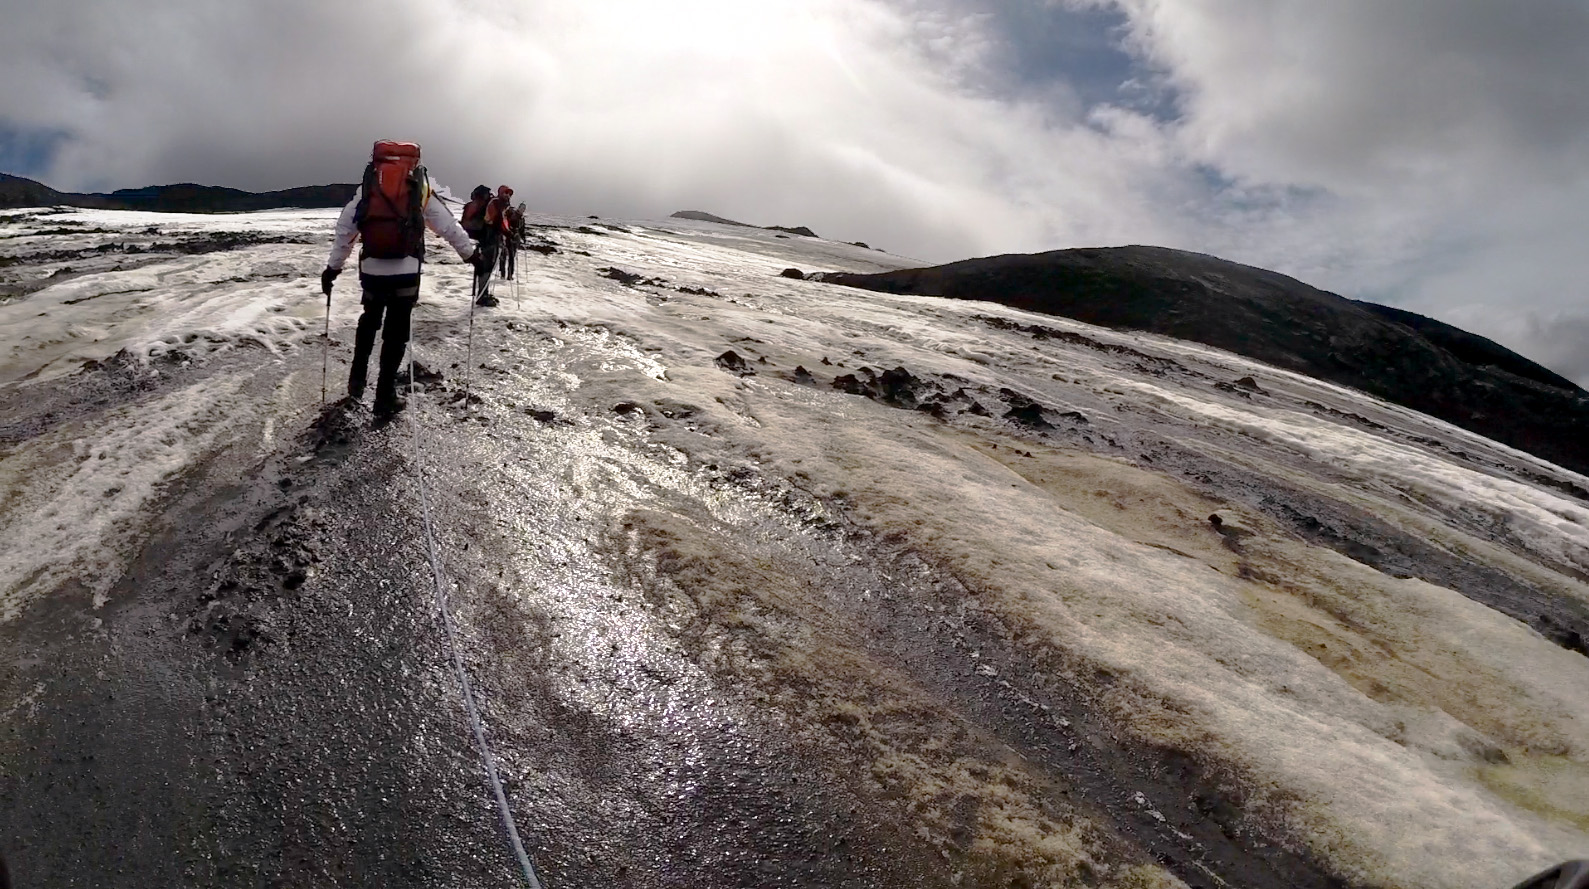 NASA Goddard scientists, in summer 2018, climb to a geothermal site on Kverkjokull glacier. Credit: Molly Wasser / NASA Goddard